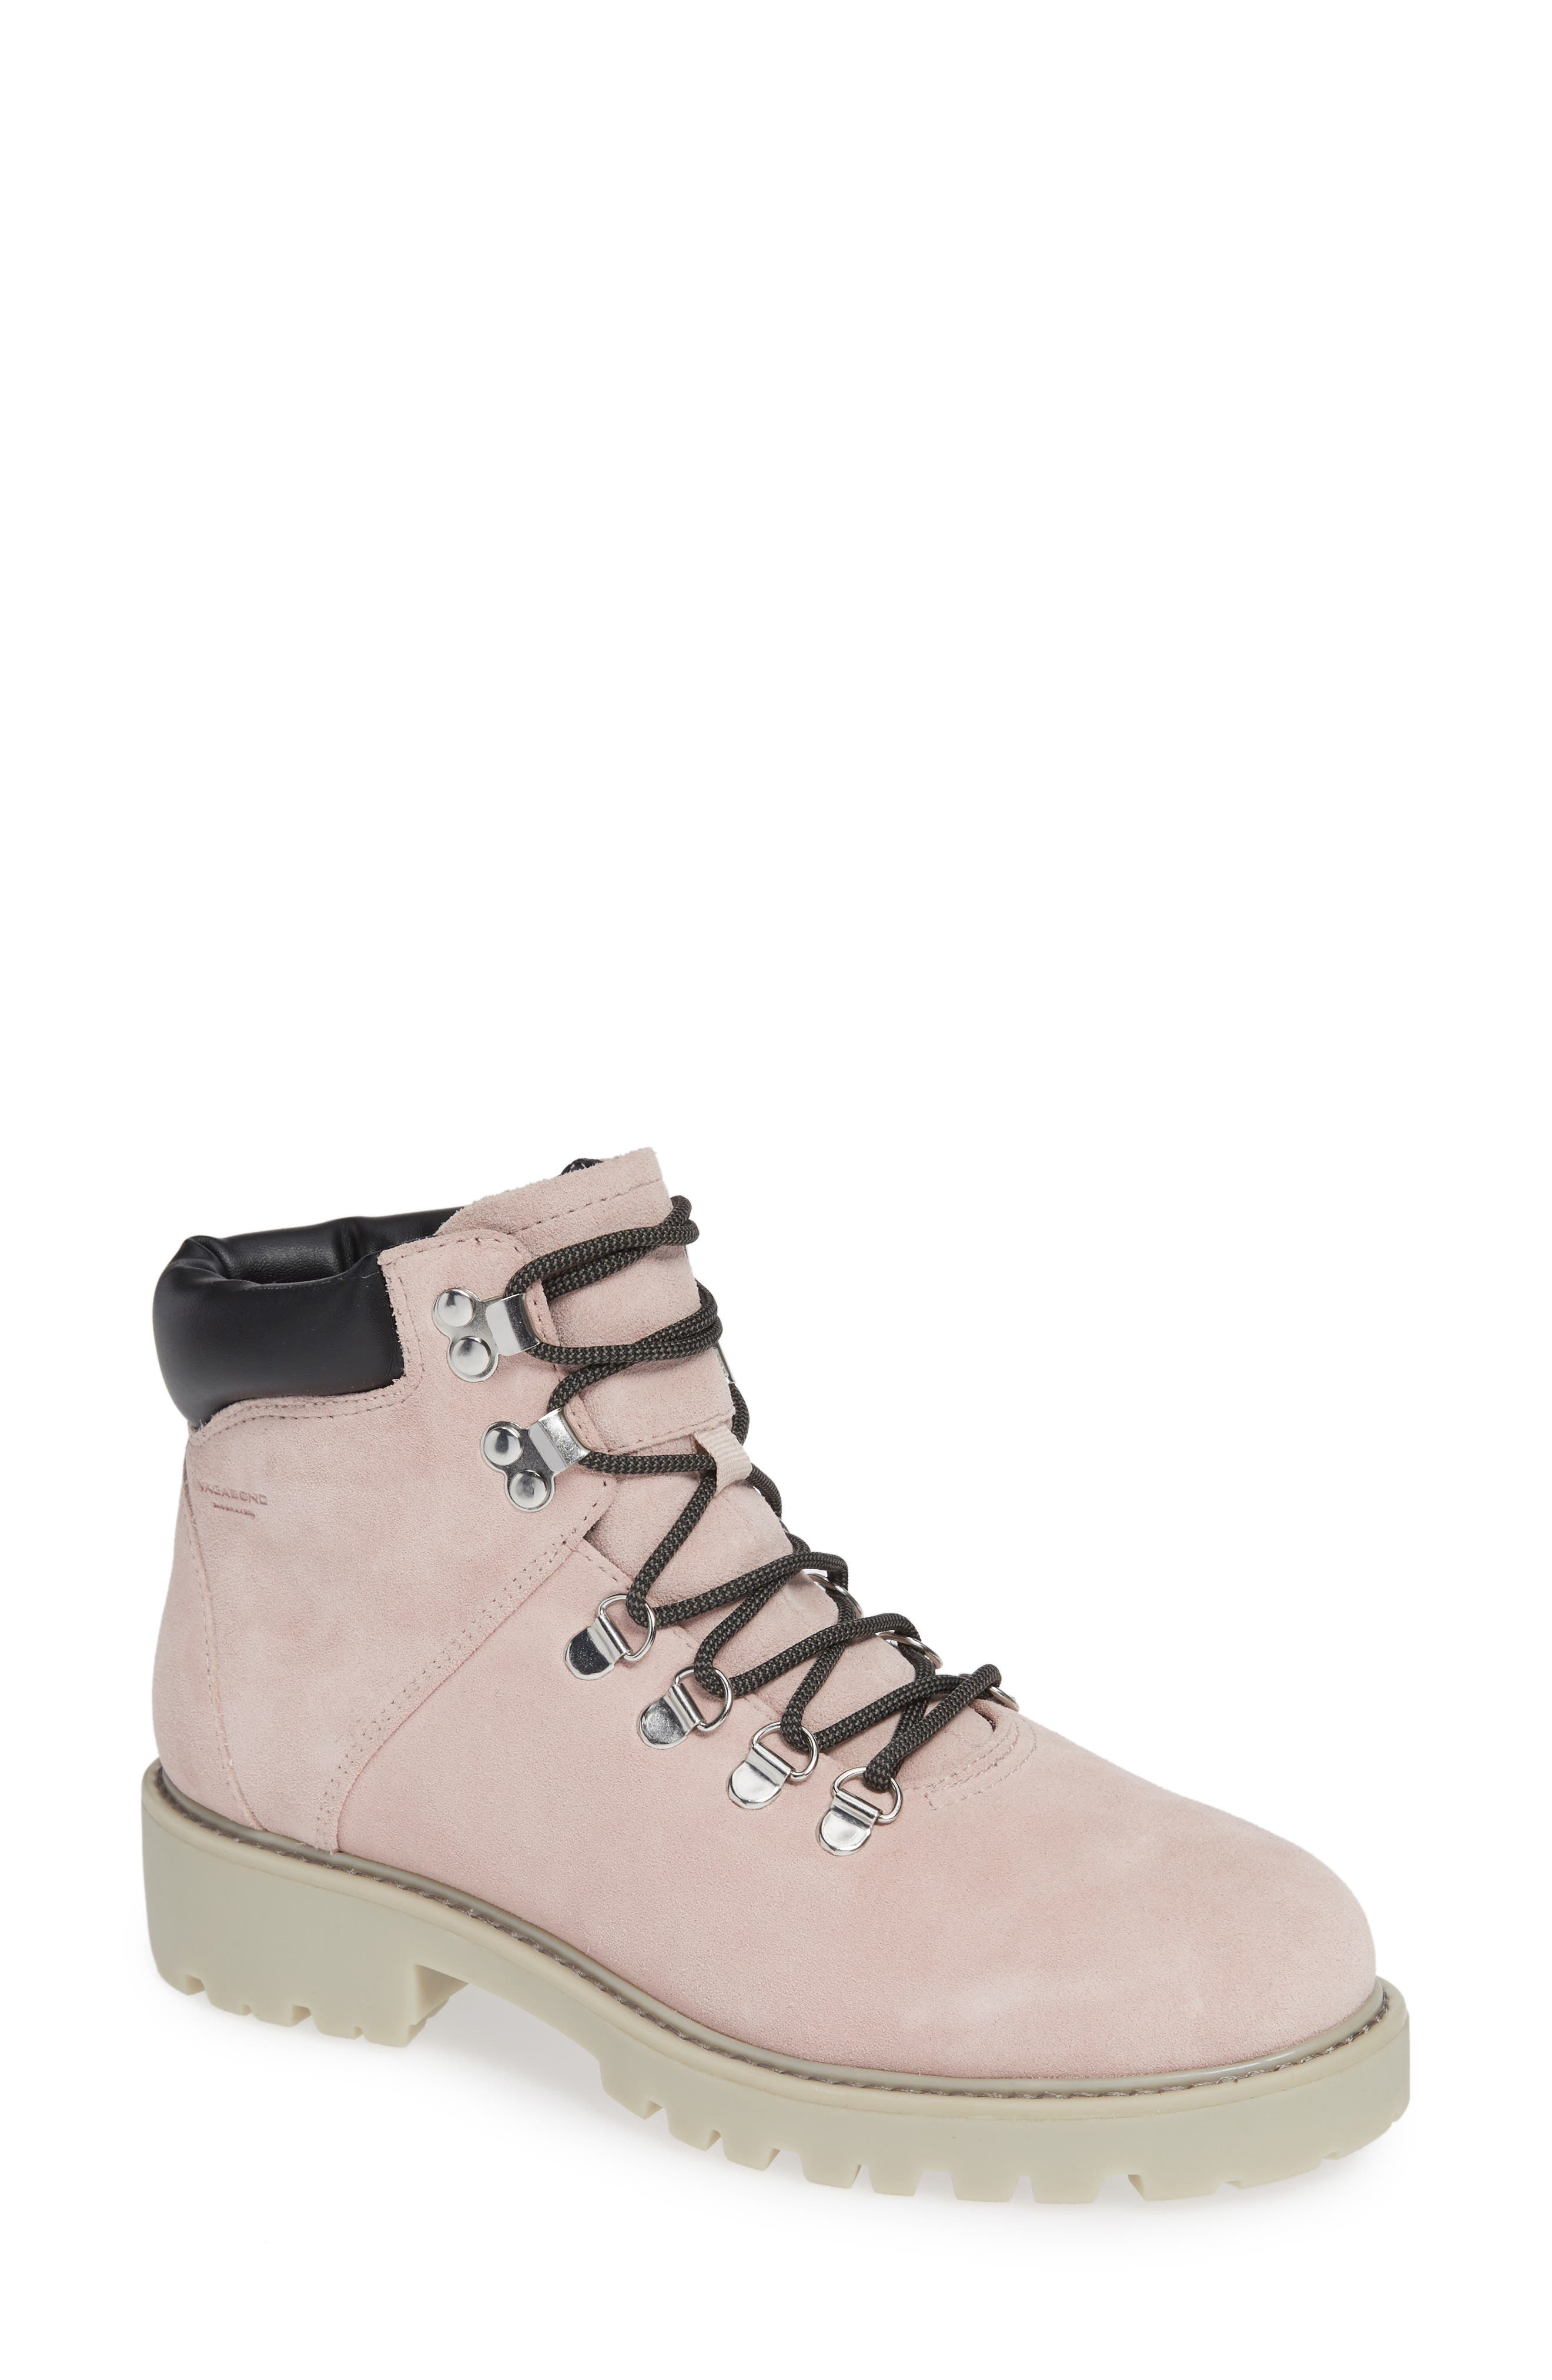 VAGABOND Shoemakers Kenova Boot, Main, color, MILKSHAKE SUEDE